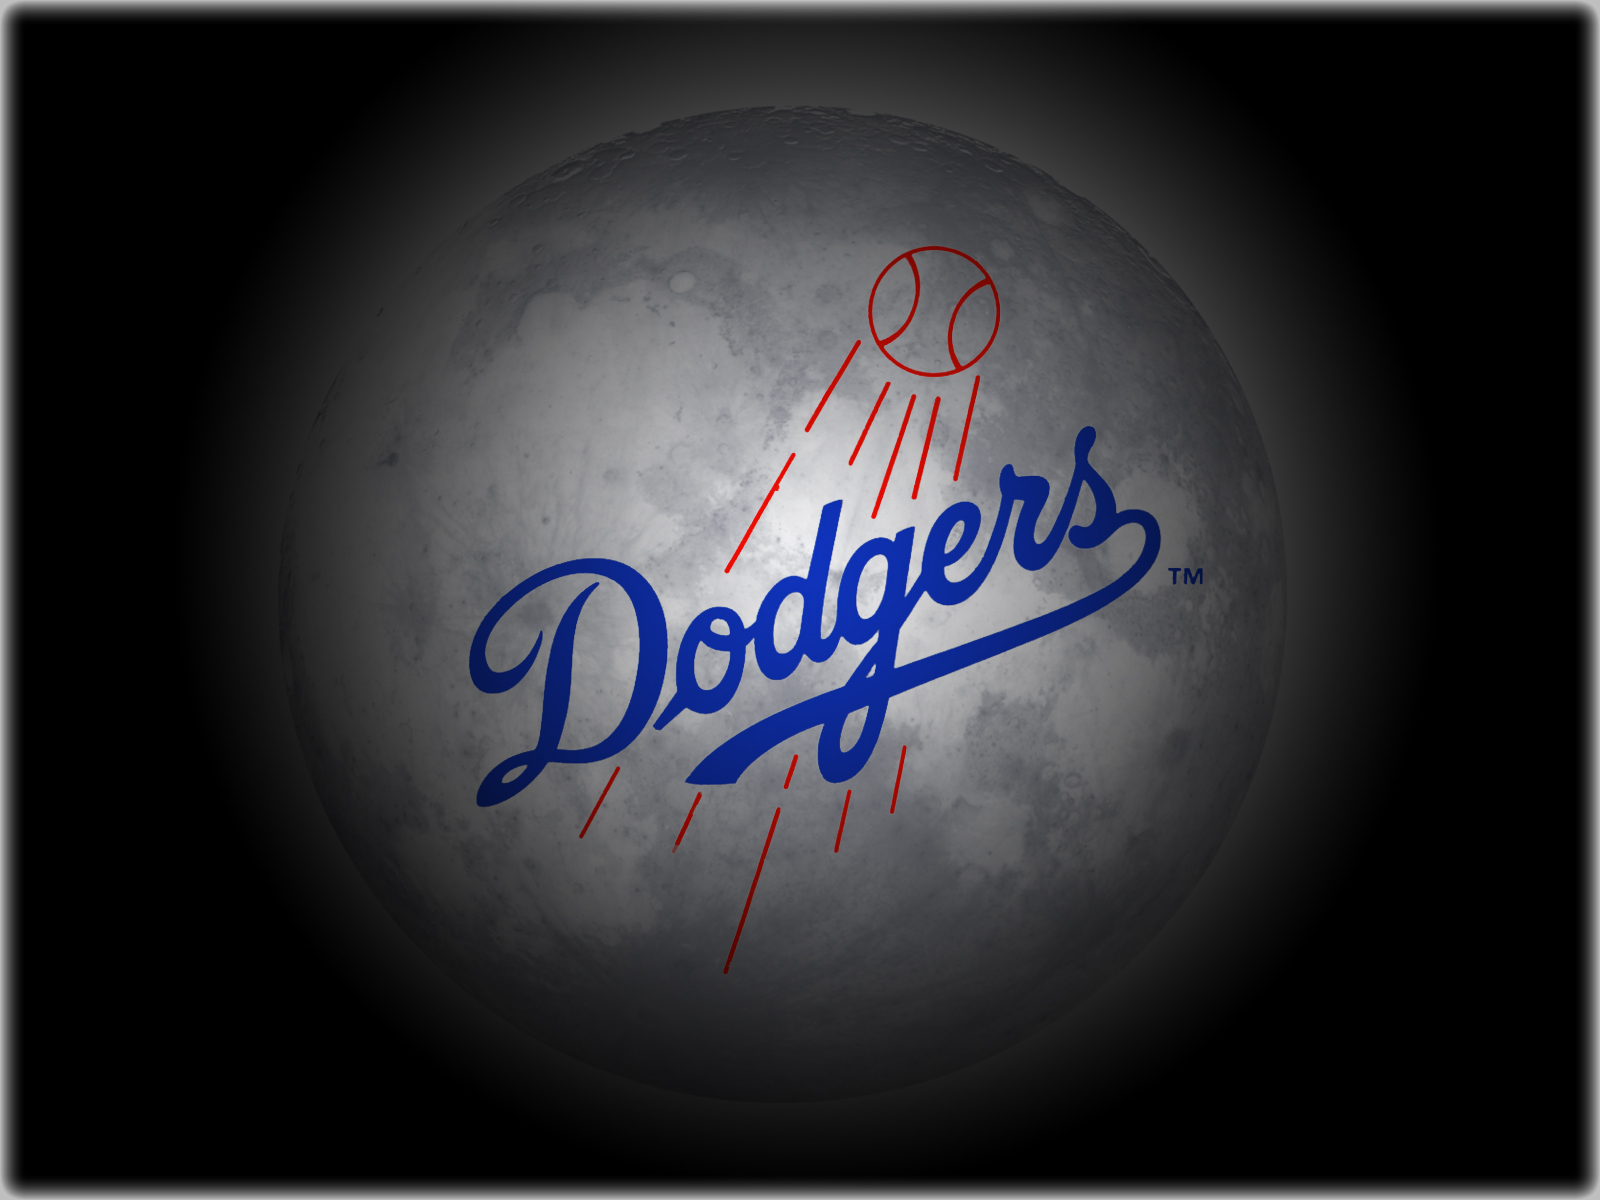 LOS ANGELES DODGERS baseball mlb h wallpaper background